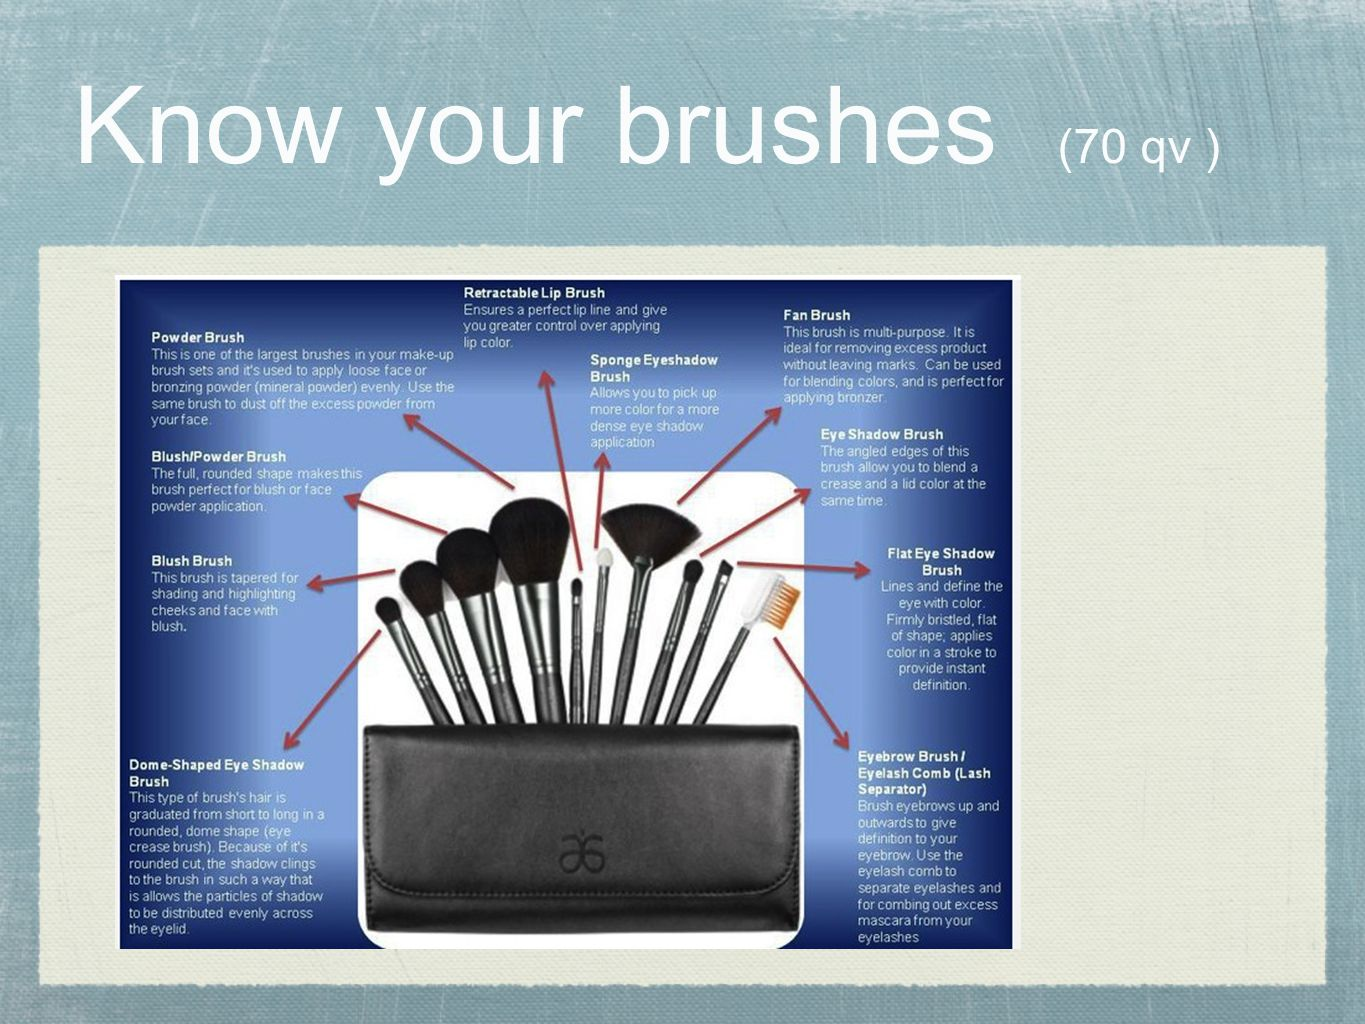 Know your brushes (70 qv )